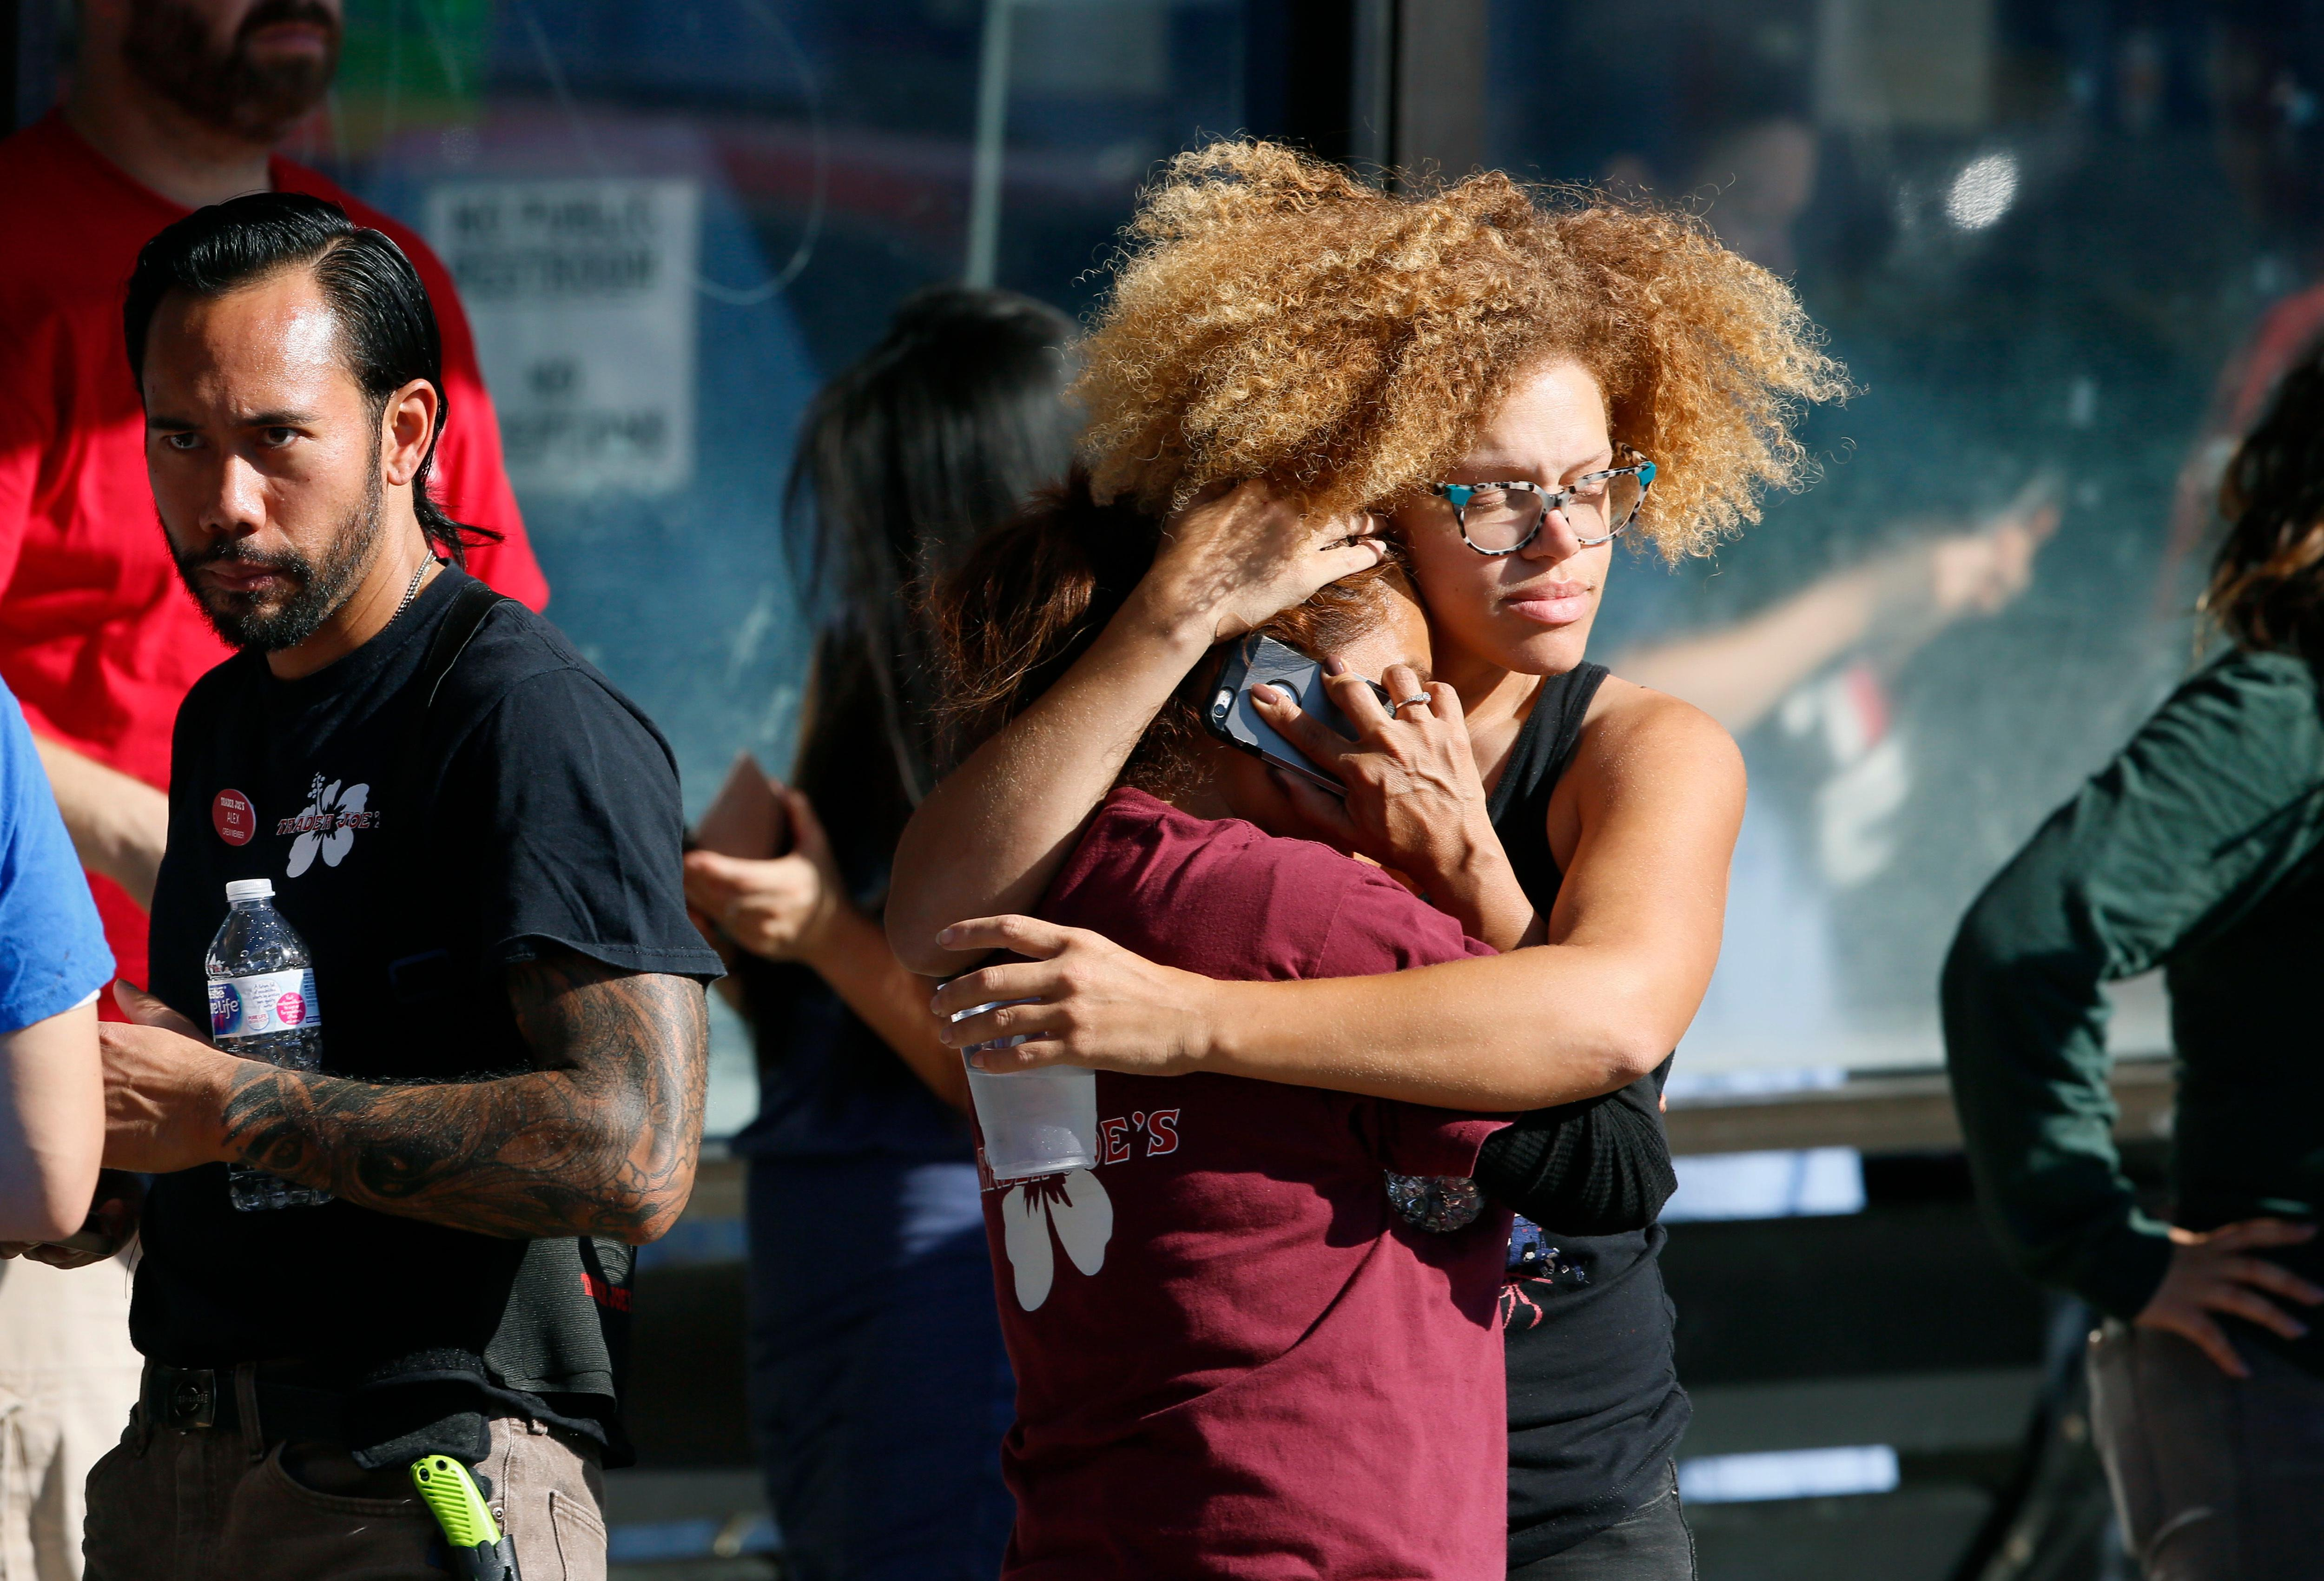 Unidentified Trader Joe's supermarket employees hug after being evacuated by Los Angeles Police after a gunman barricaded himself inside  the store in Los Angeles Saturday, July 21, 2018. Police believe a man involved in a standoff at the Los Angeles supermarket shot his grandmother and girlfriend and then fired at officers during a pursuit before he crashed into a utility pole outside the supermarket and ran inside the store. Hours after he took hostages in the store, the suspect surrendered. (AP Photo/Damian Dovarganes)